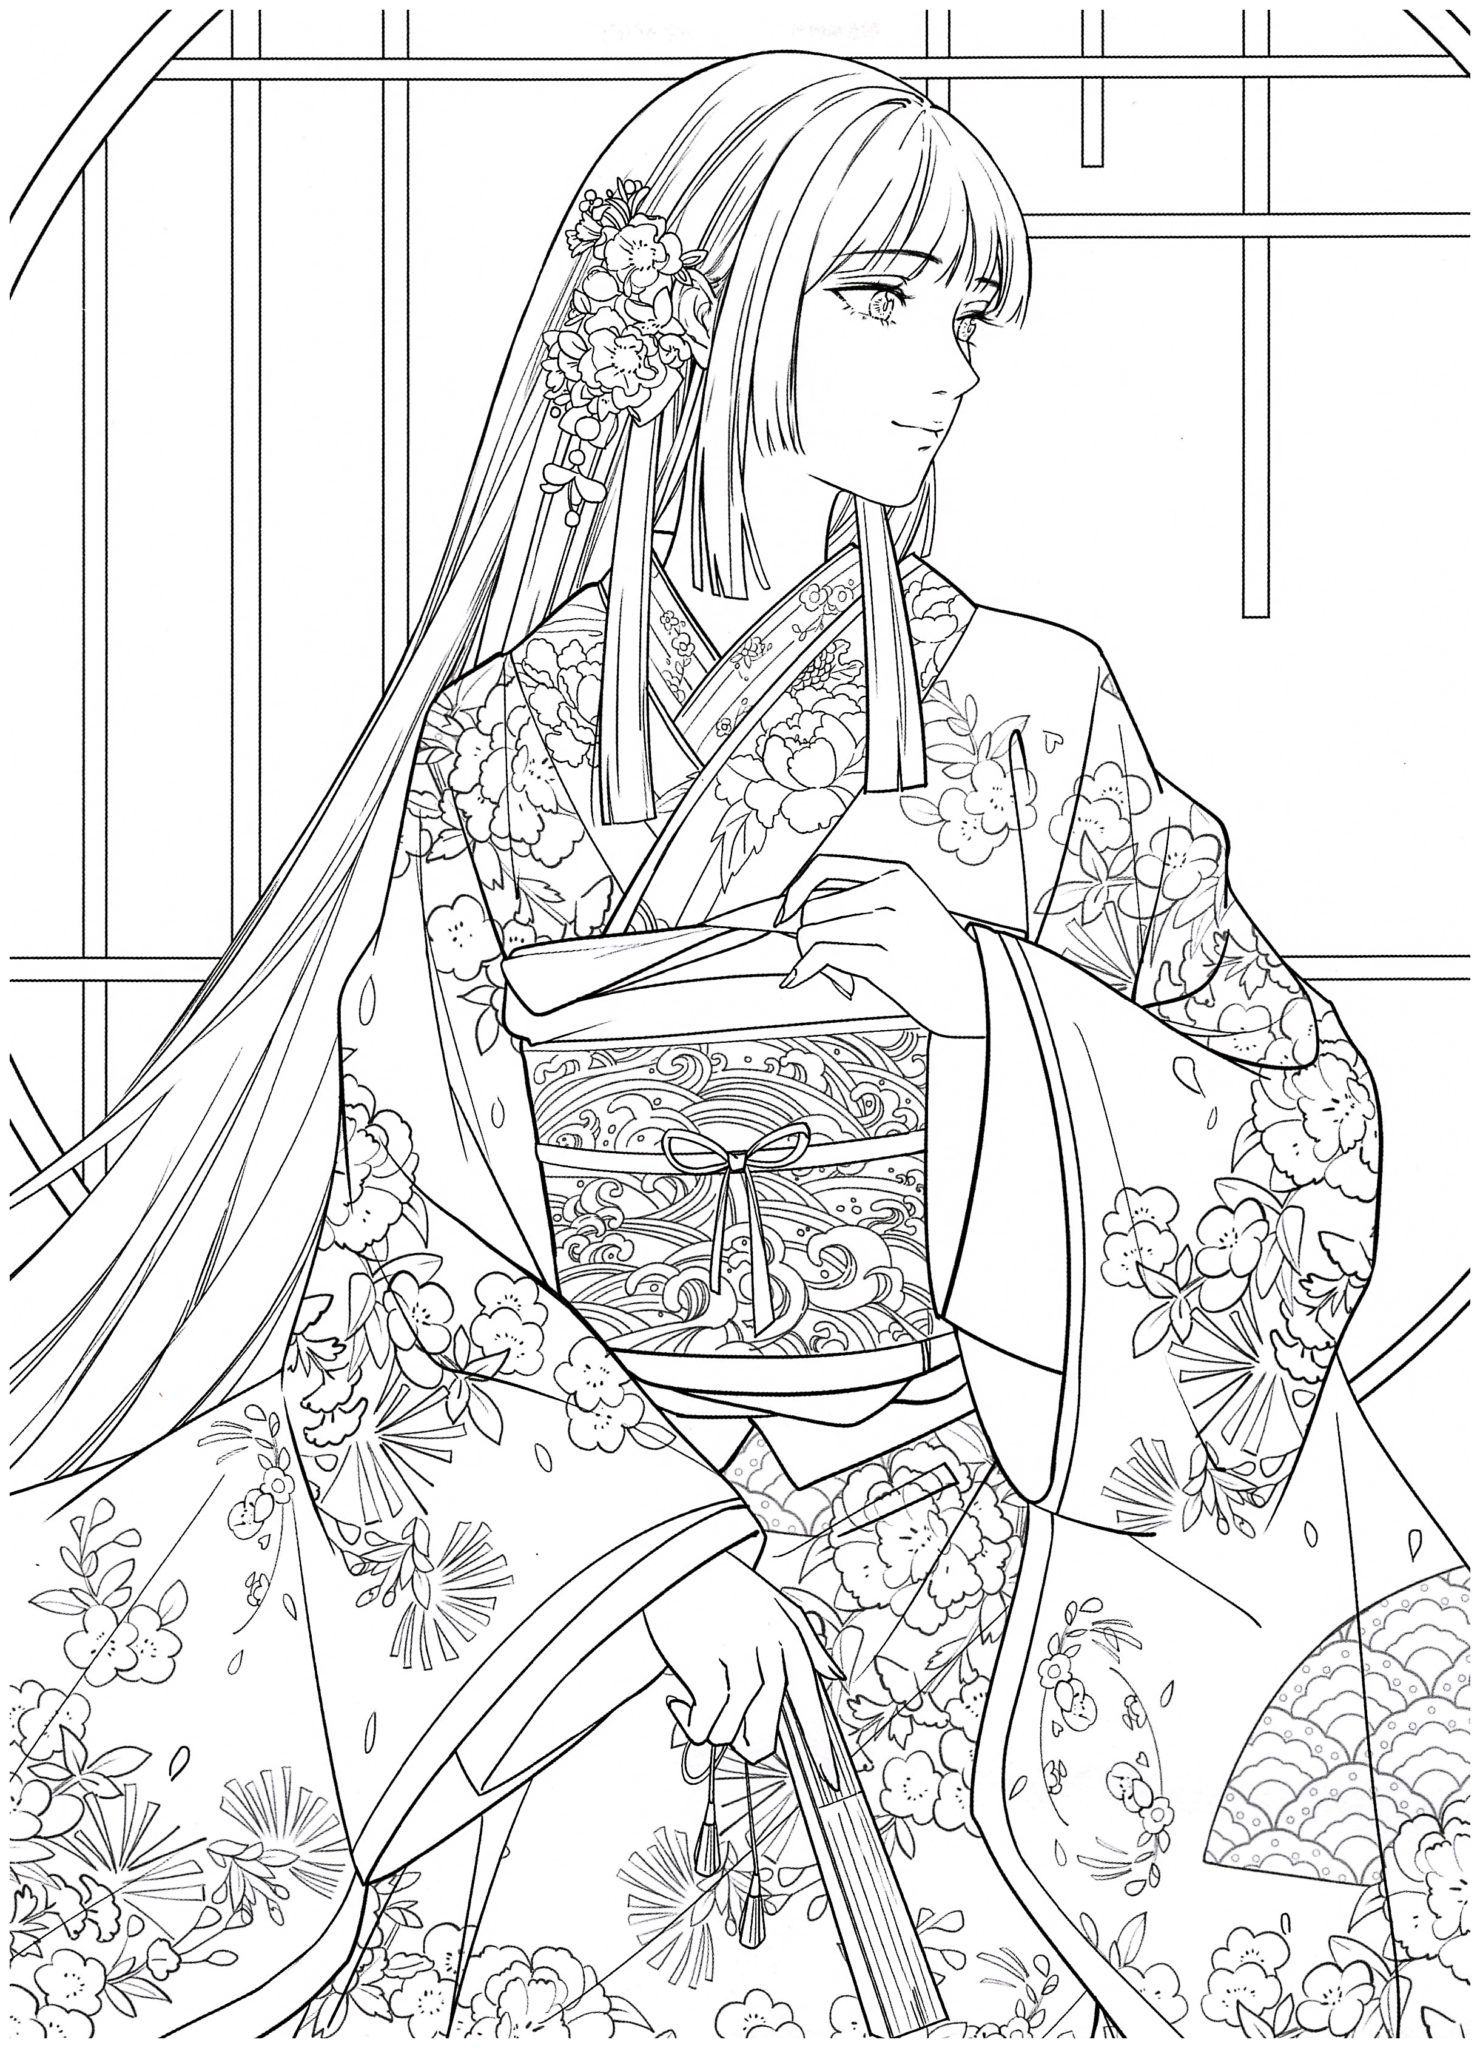 Chinese Portrait Coloring Ebook Vol 13 Floral Wedding Kayliebooks Anime Lineart Fashion Coloring Book Cute Coloring Pages [ 2048 x 1480 Pixel ]